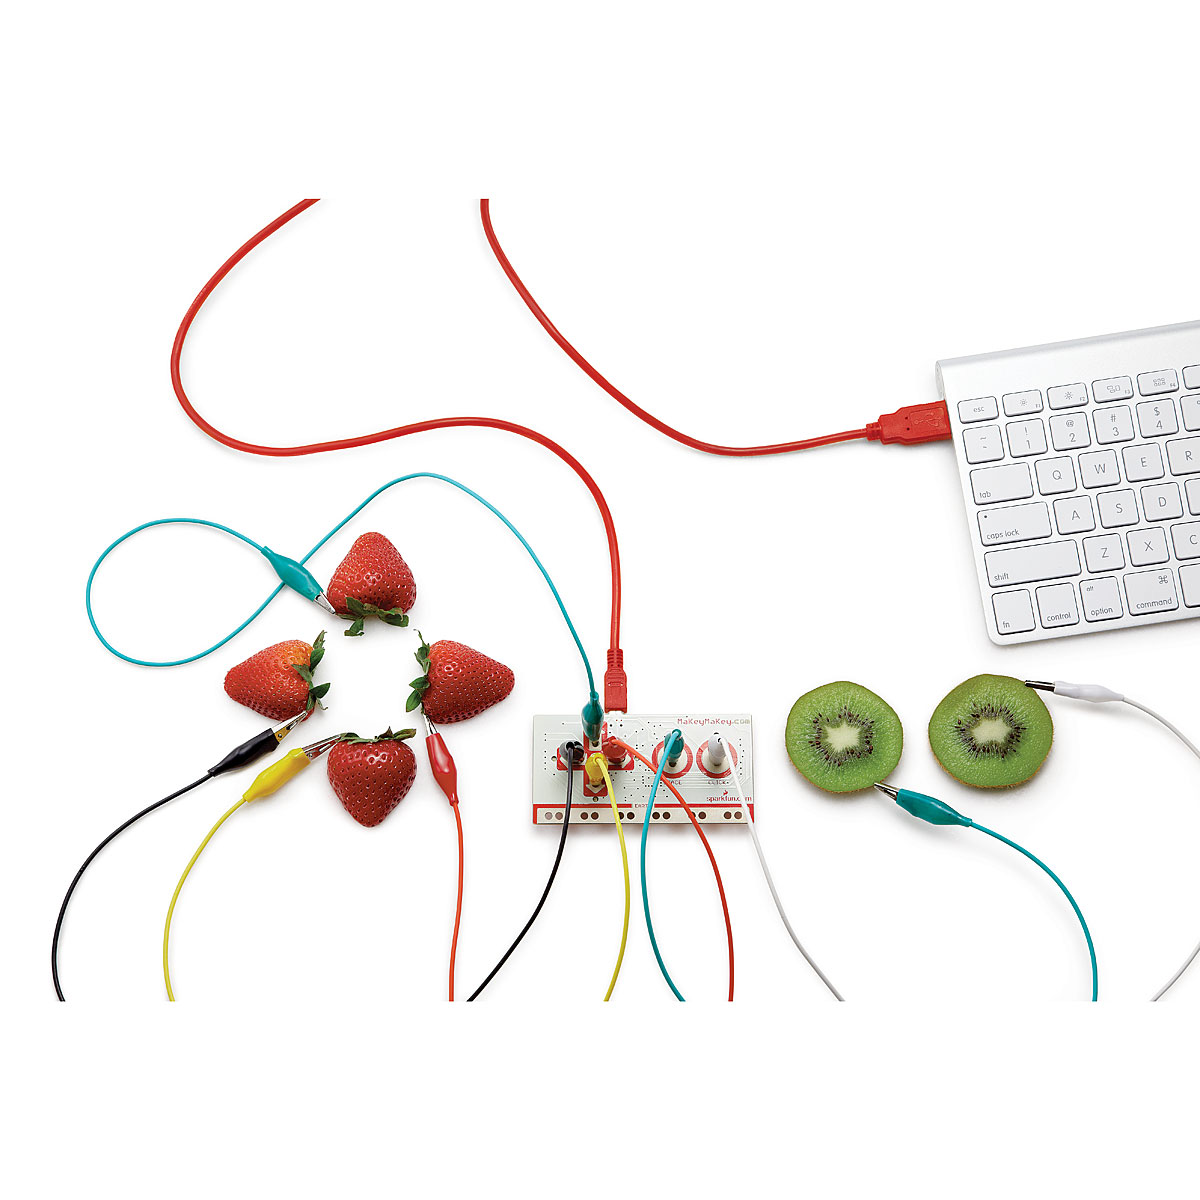 makey makey invention kit picture